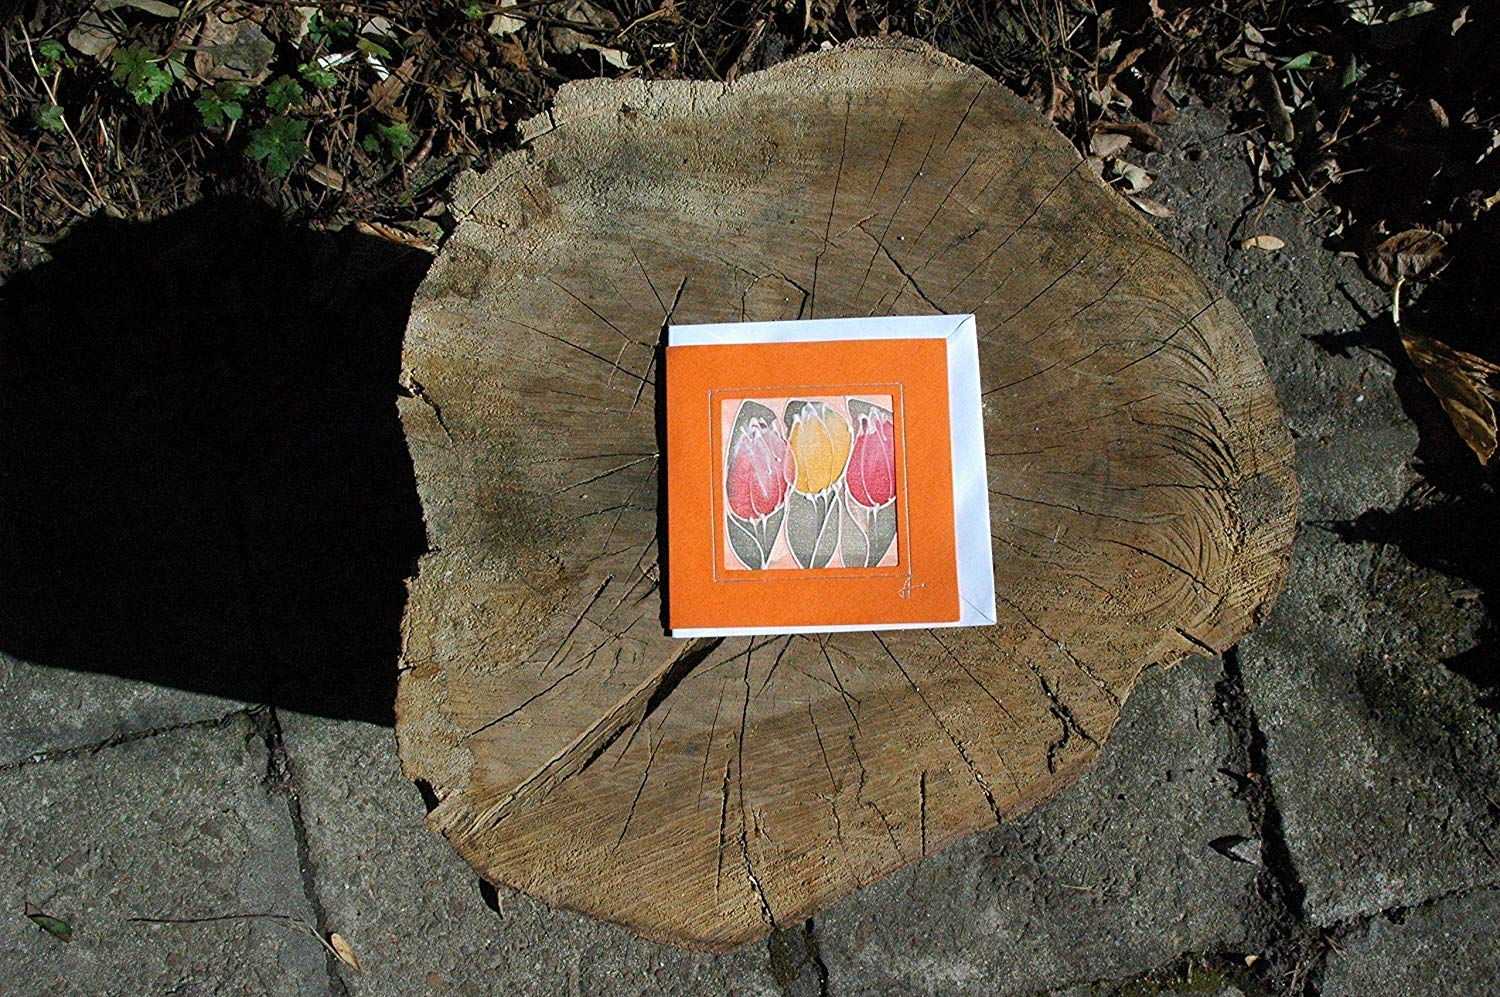 Sale!!!20% Off,Orange Tulips Card, Silk Painting Greetings Card, Tulip Gift Flower Card, Blank Card, Tulip Mother's Day, Mom day, Happy Birthday card, Tulip Card.